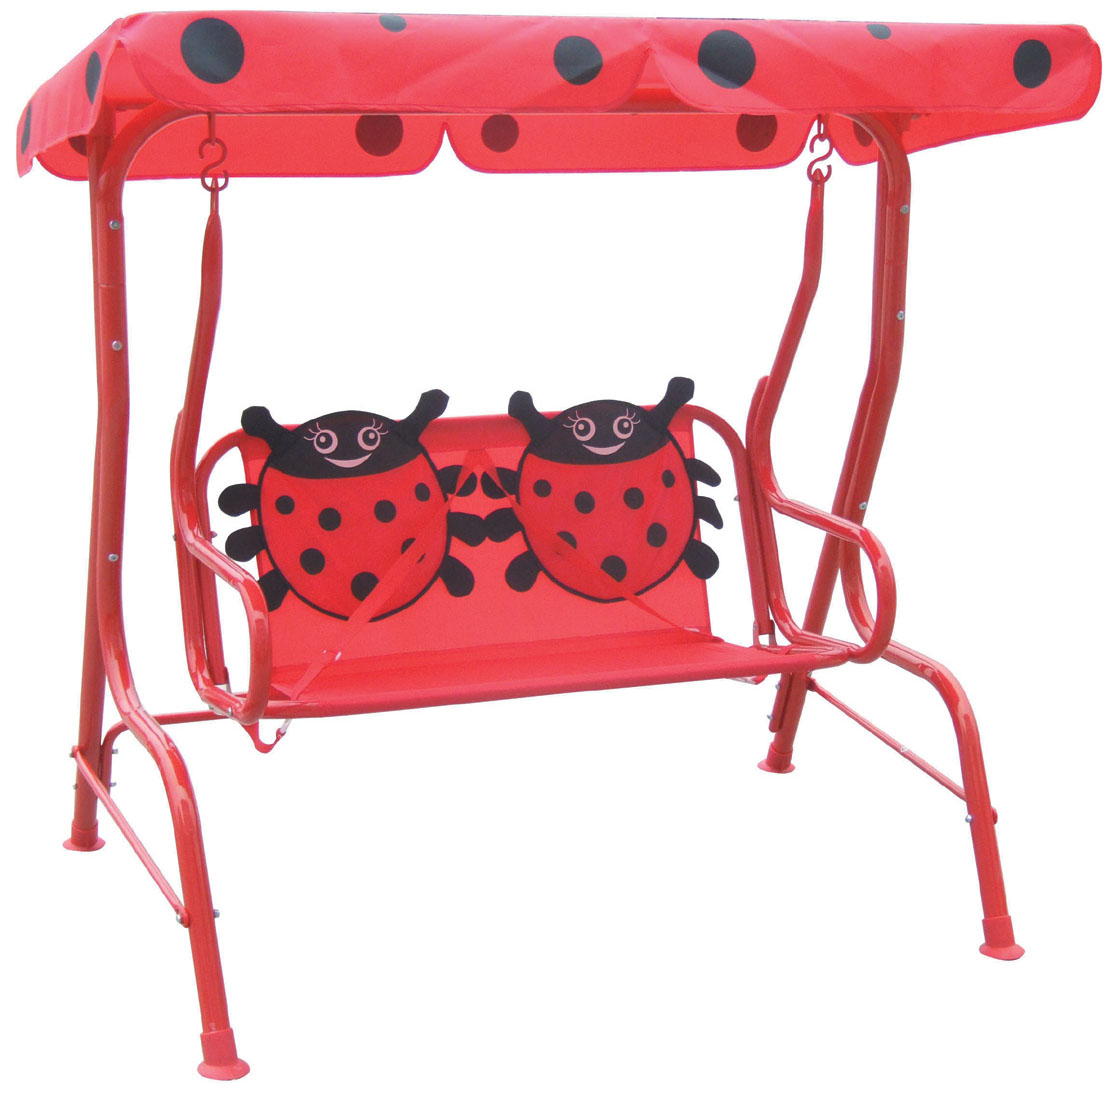 kids outdoor chair counter height kitchen tables and chairs far east brokers recalls ladybug themed furniture due leisure ways swing